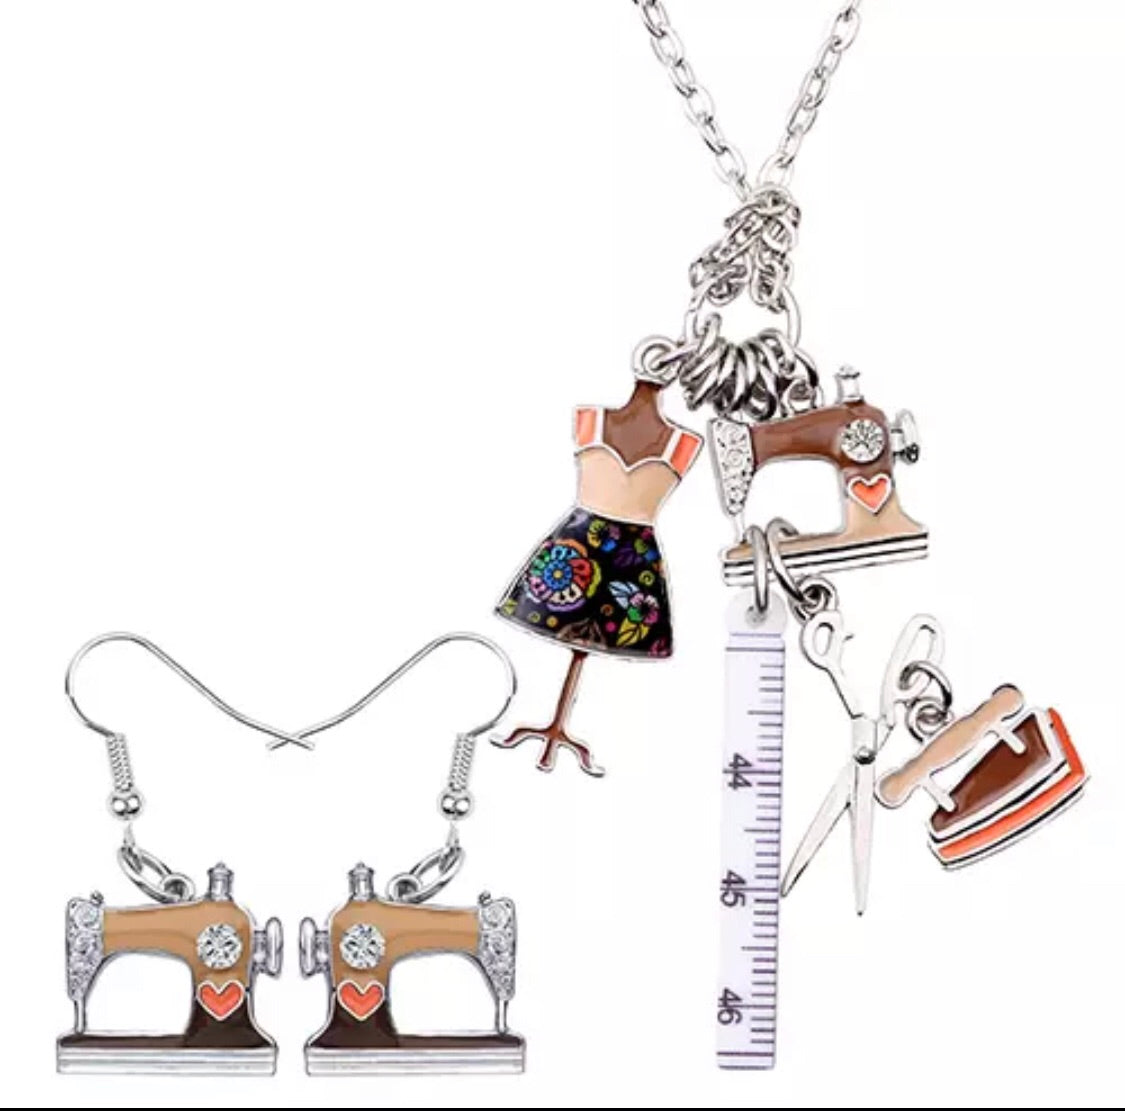 Bonsny sewers charm necklace and earrings set